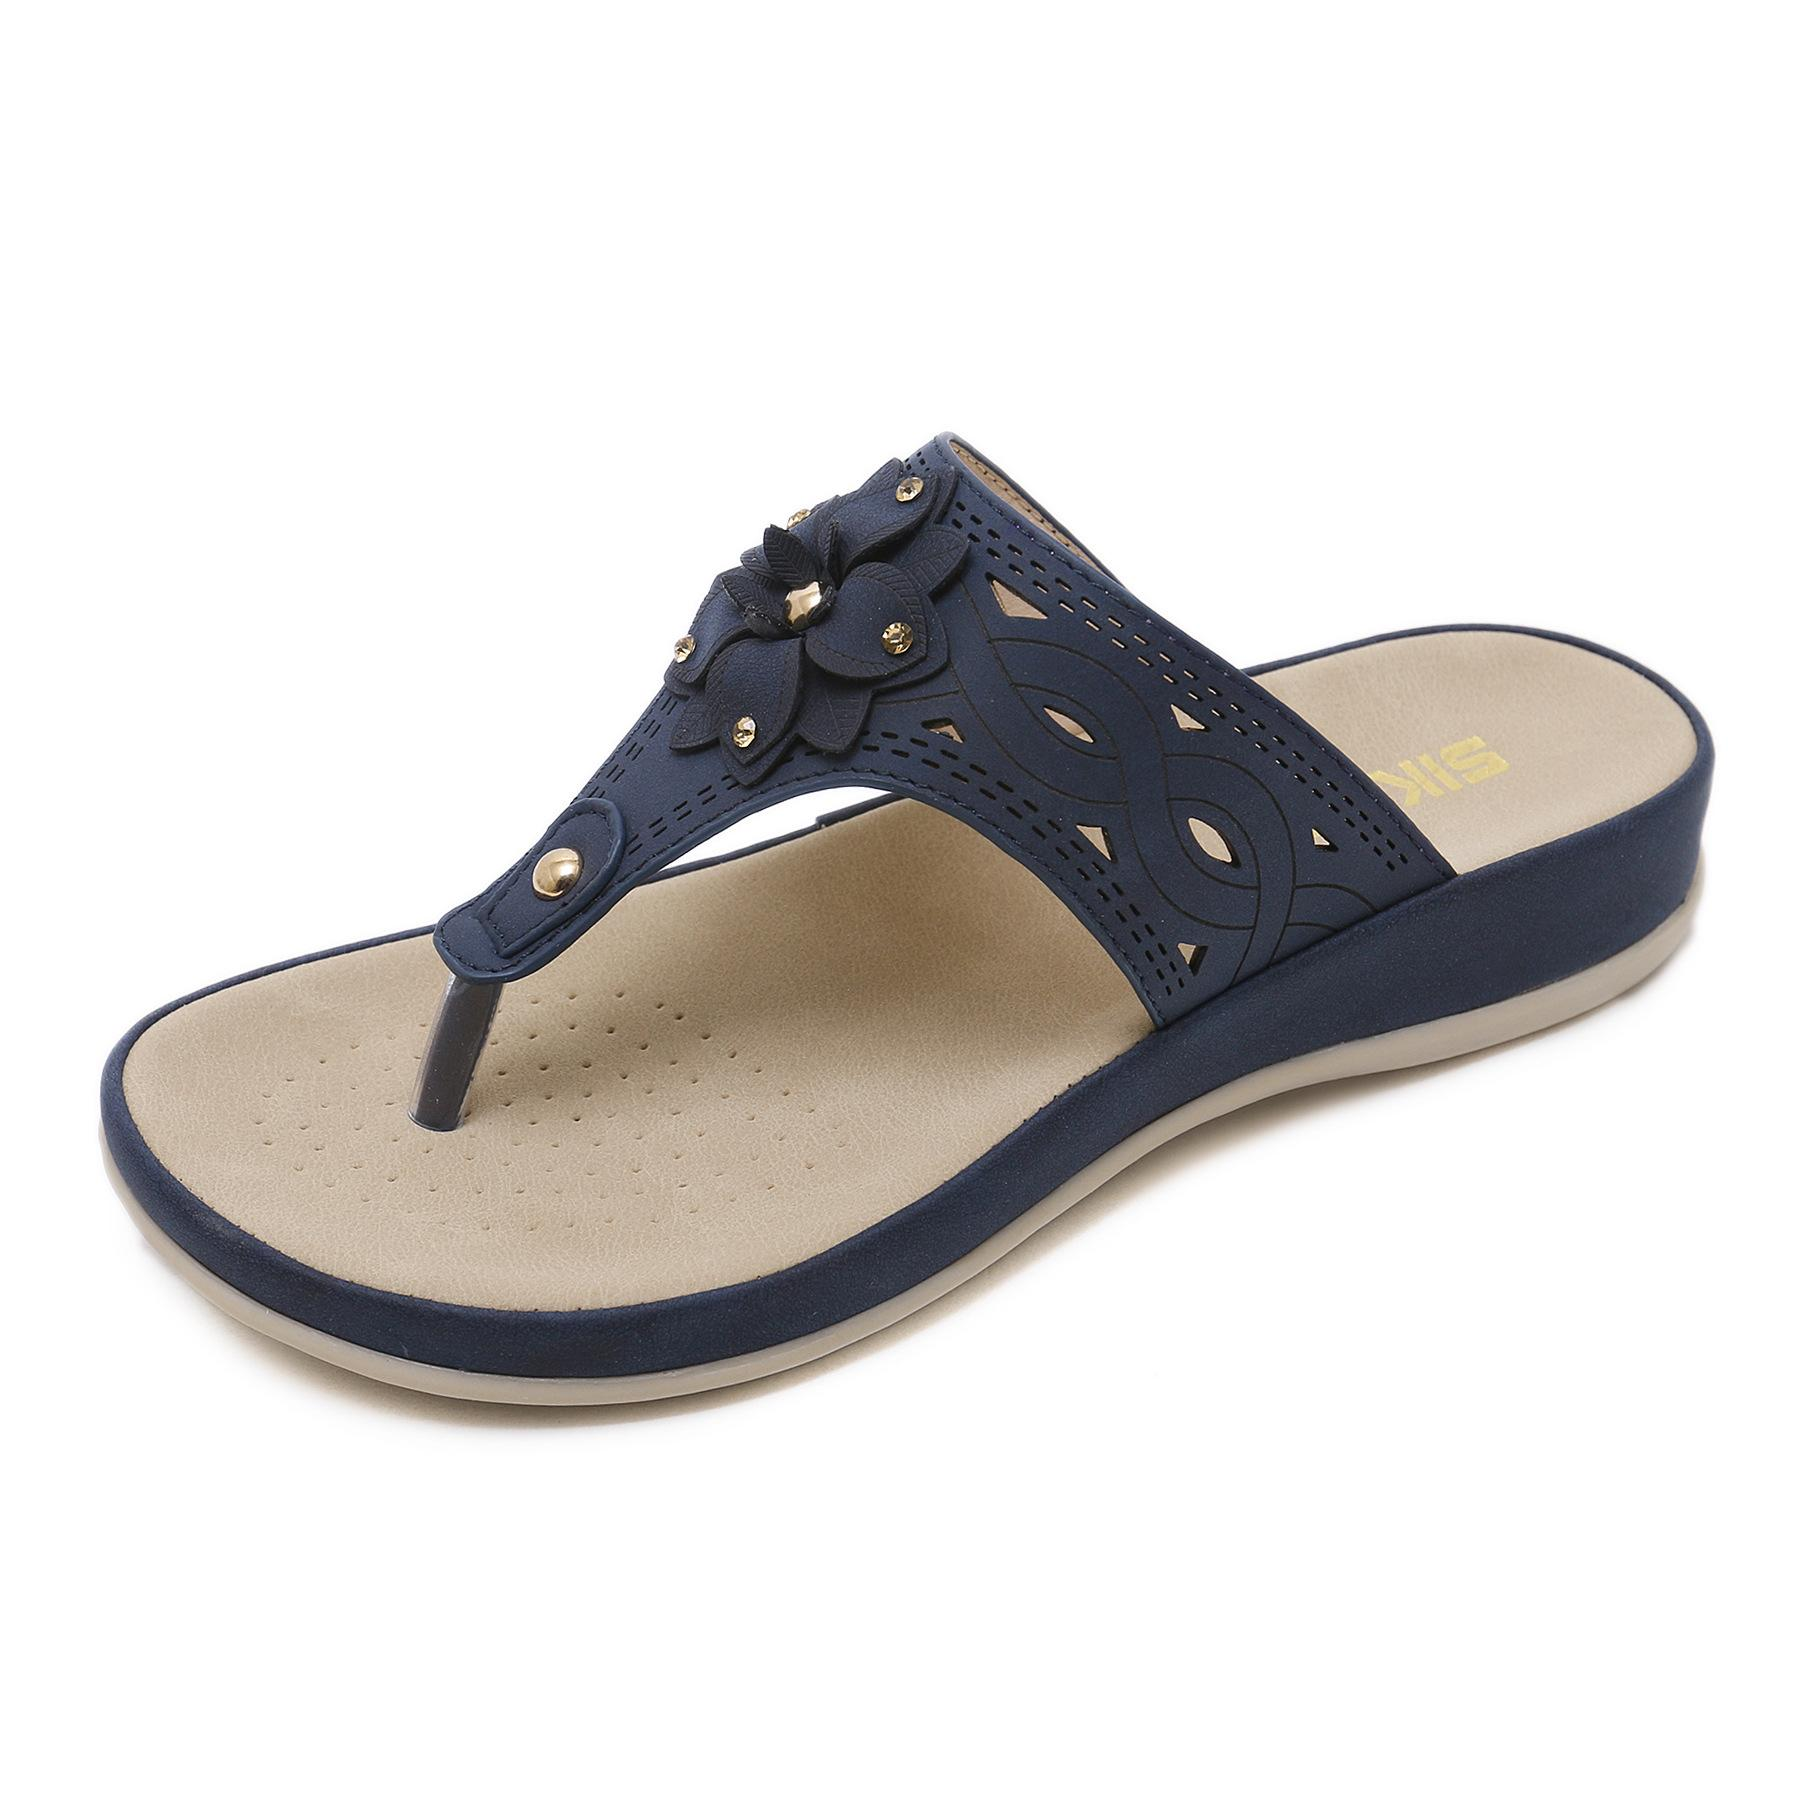 New Summer Wedges Heels Slippers Women Quality Flip Flops Fashion Beach  Shoes Sandals Sexy Woman Slides Plus Size 42 2019 Fur Boots Glass Slipper  From ... 7330b13ce528